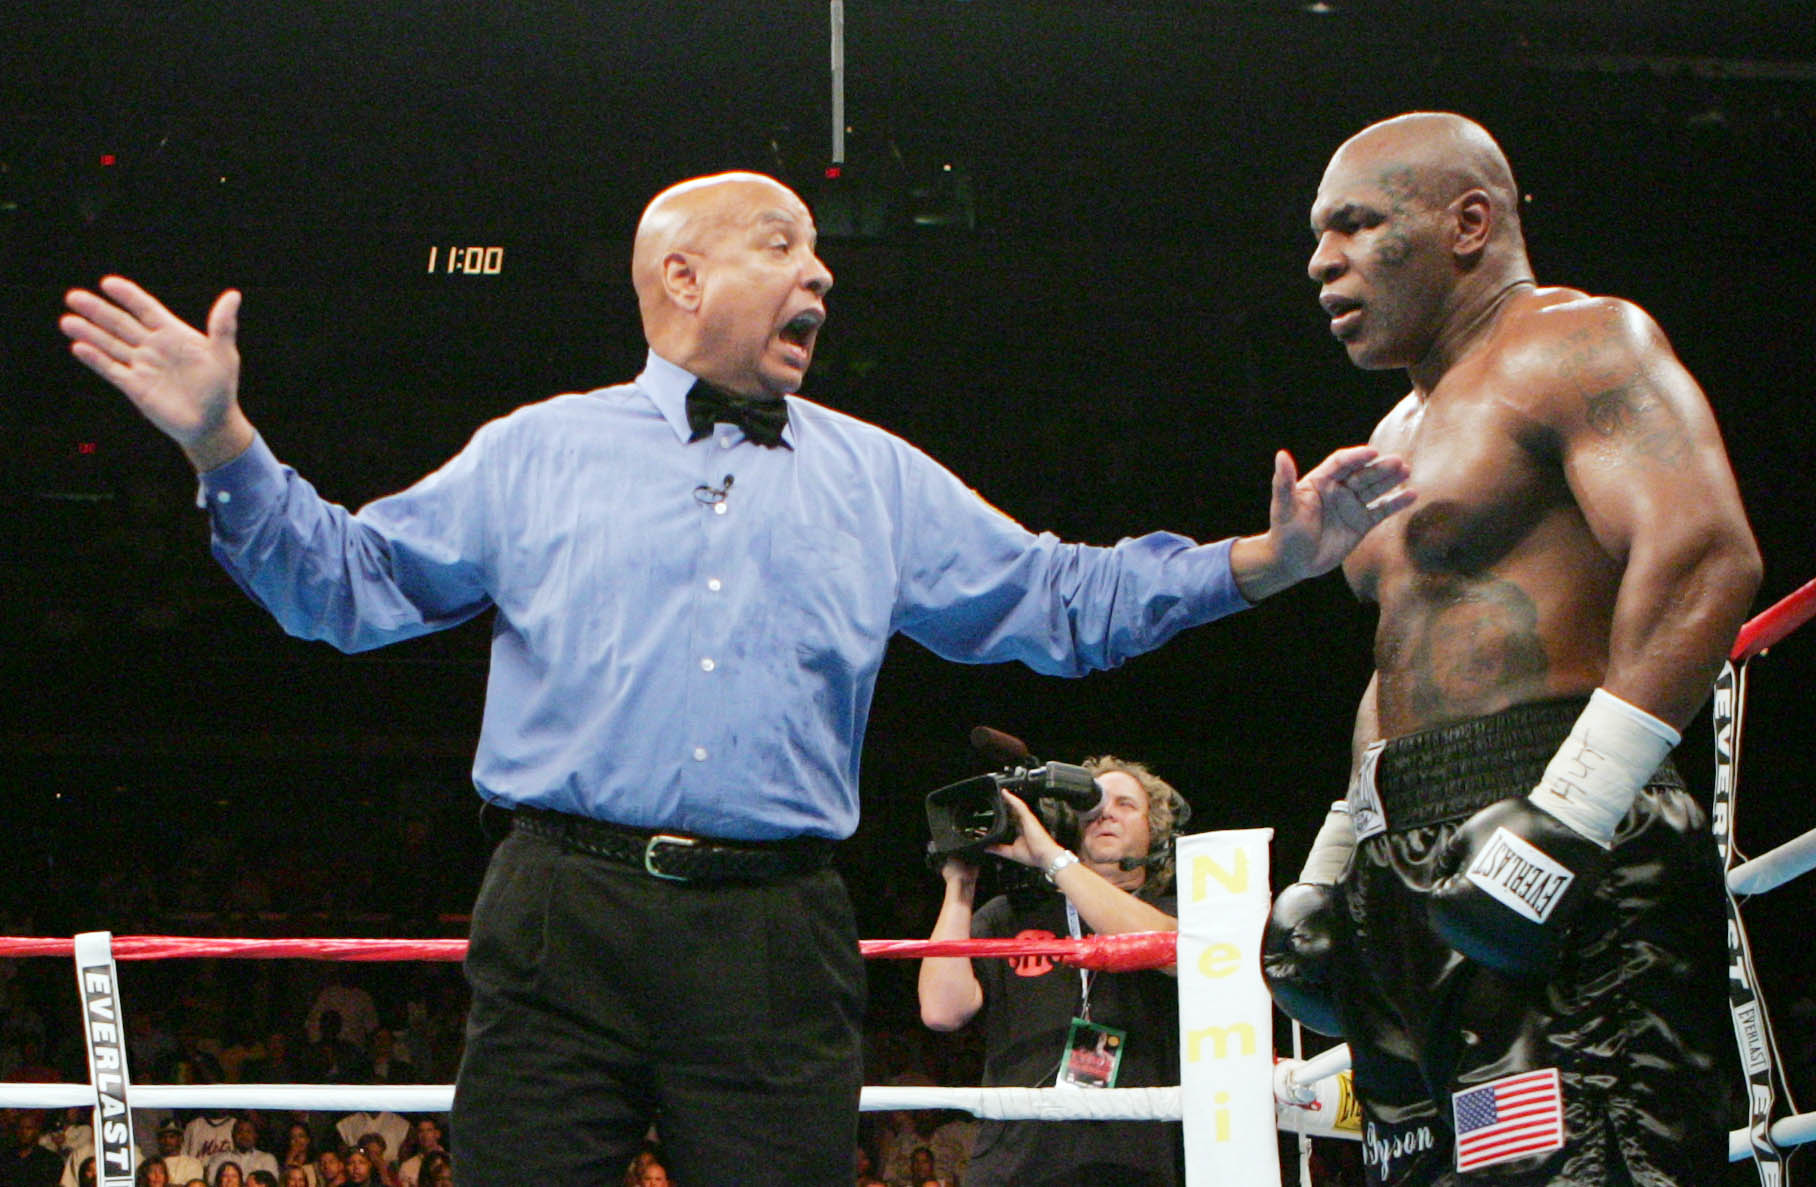 Mike Tyson, 53, should stay retired from boxing